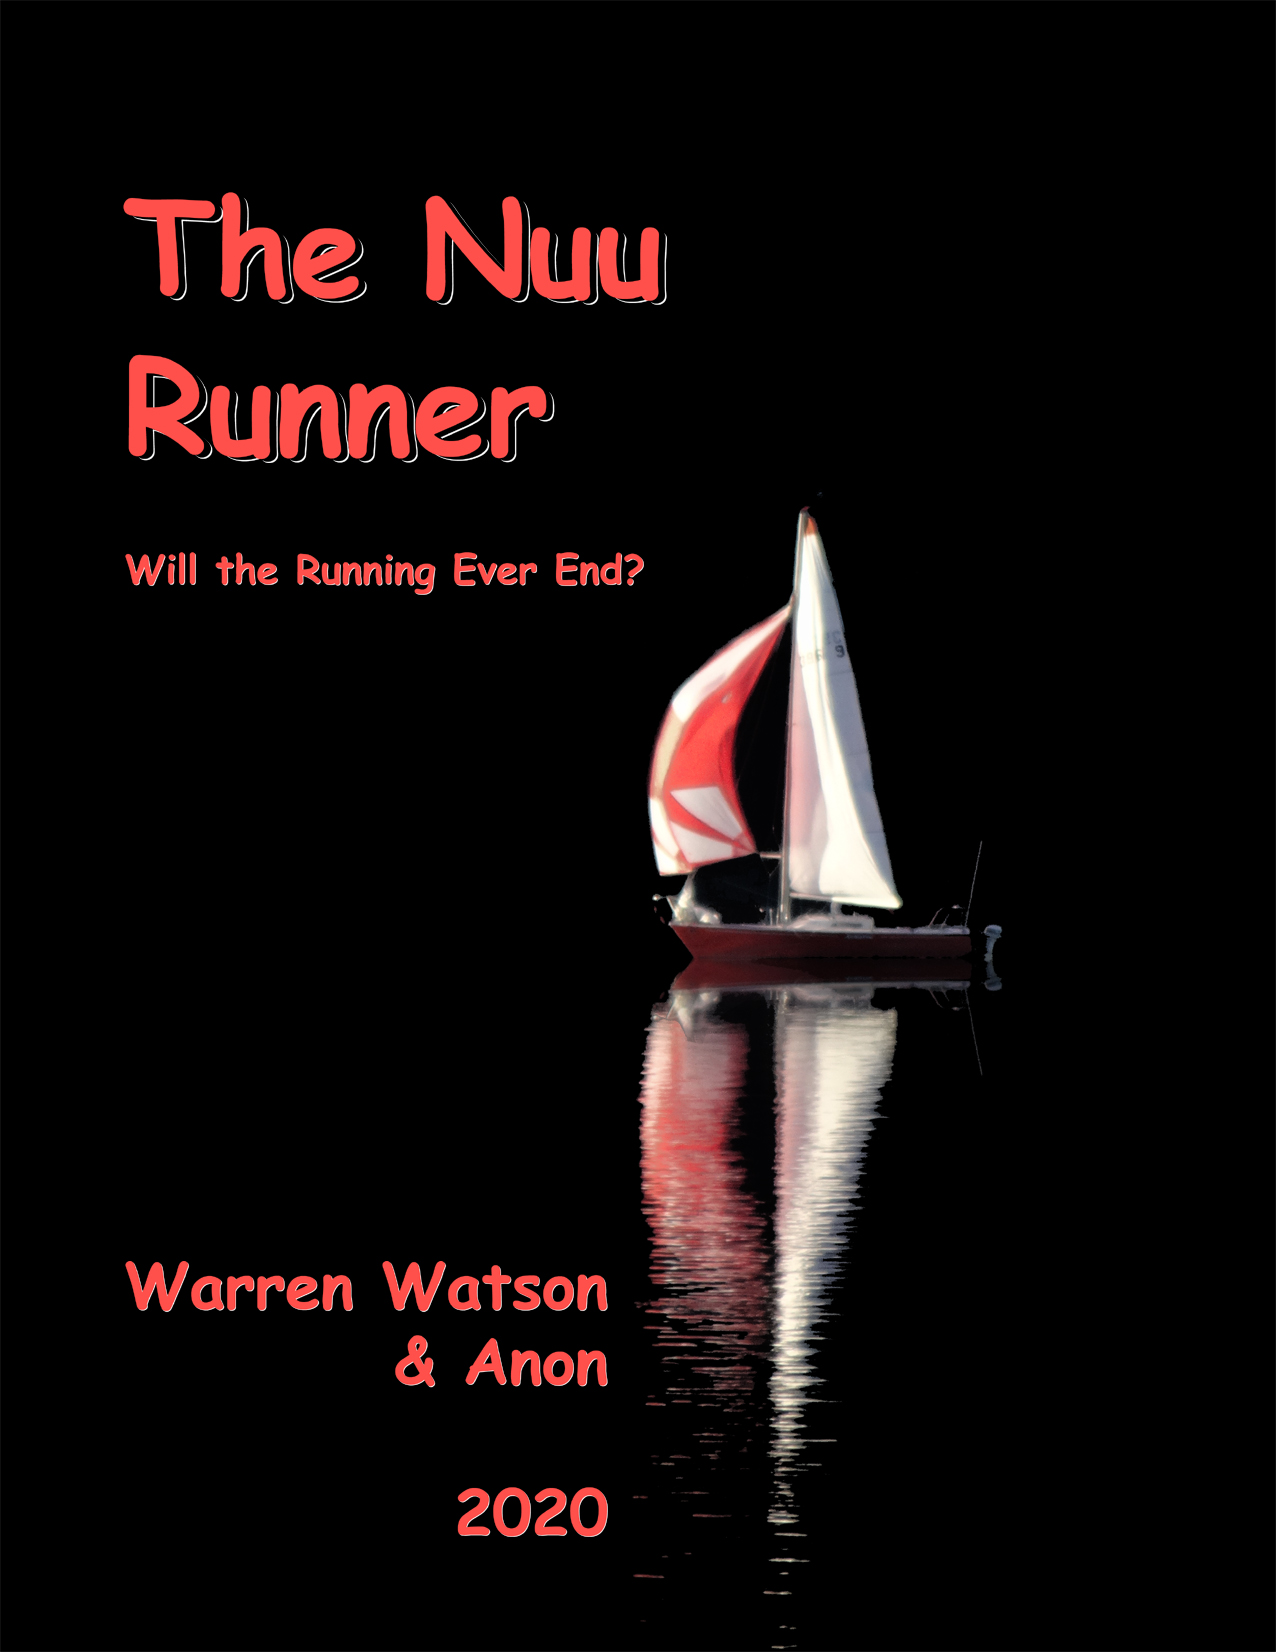 The Nuu Runner